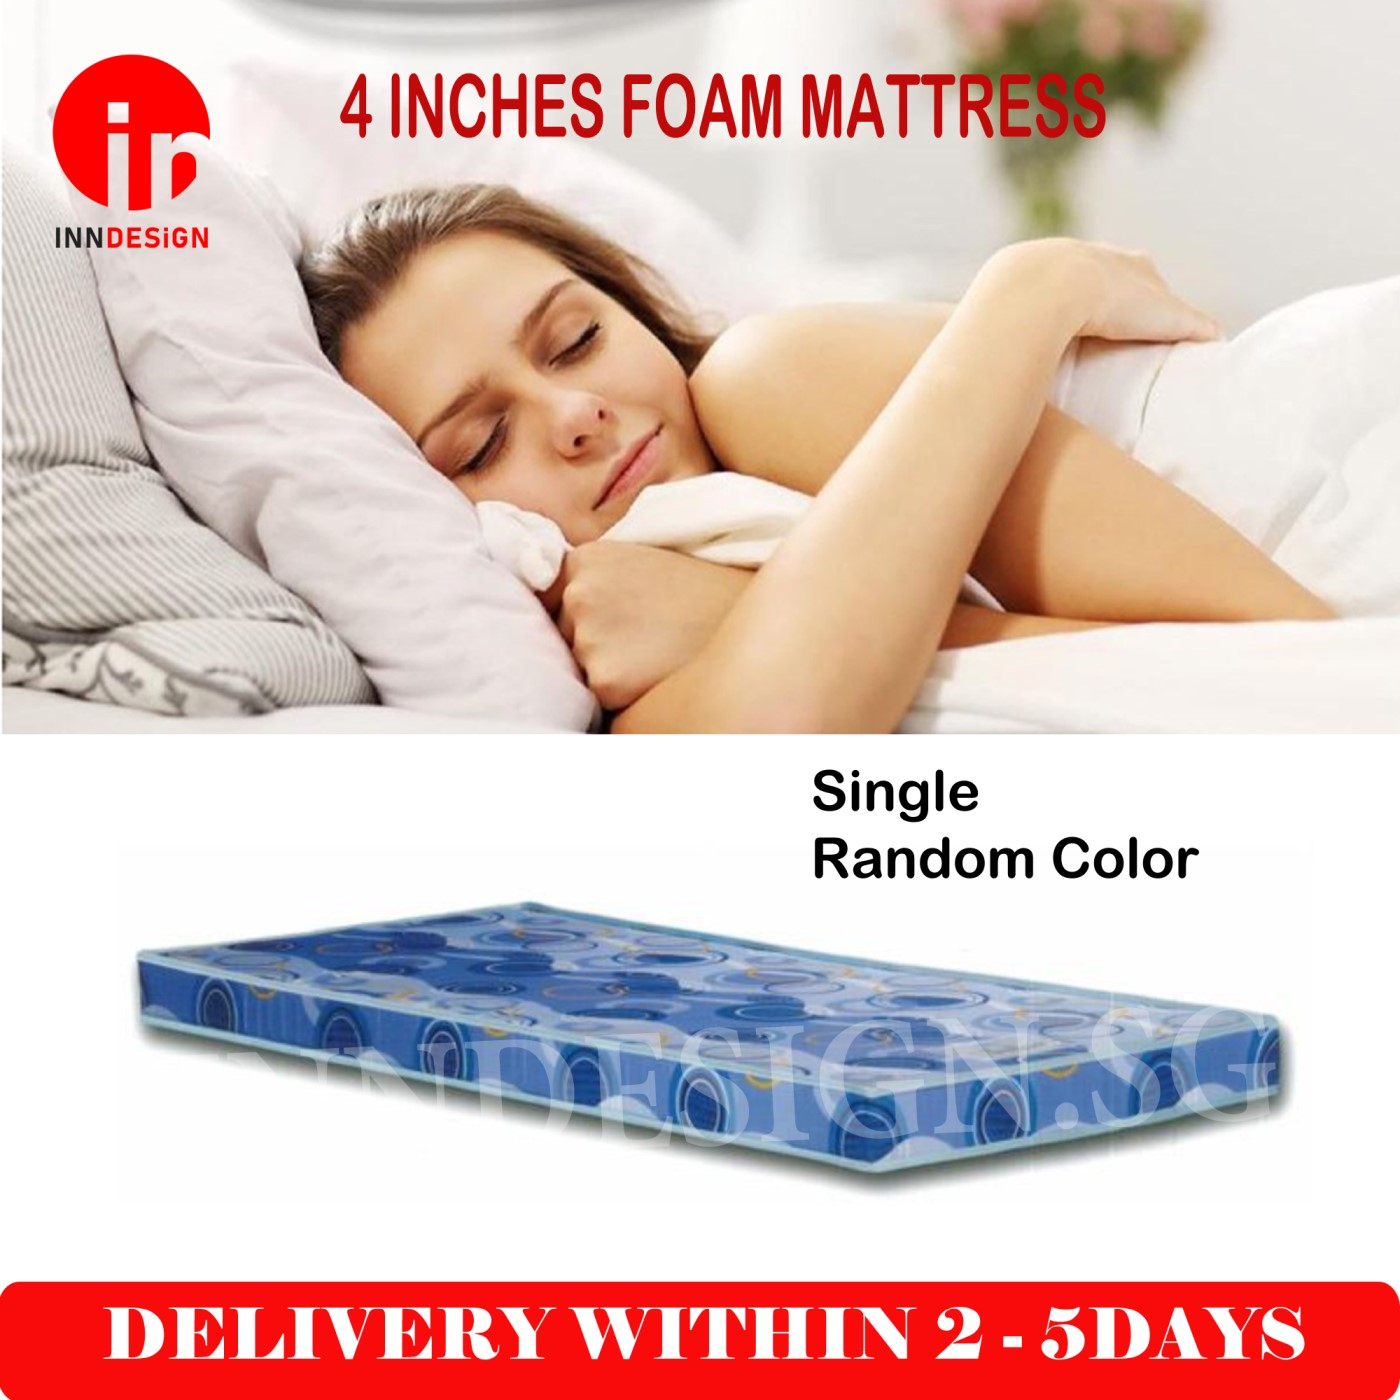 "Single 4"" Foam Mattress- Random Color"